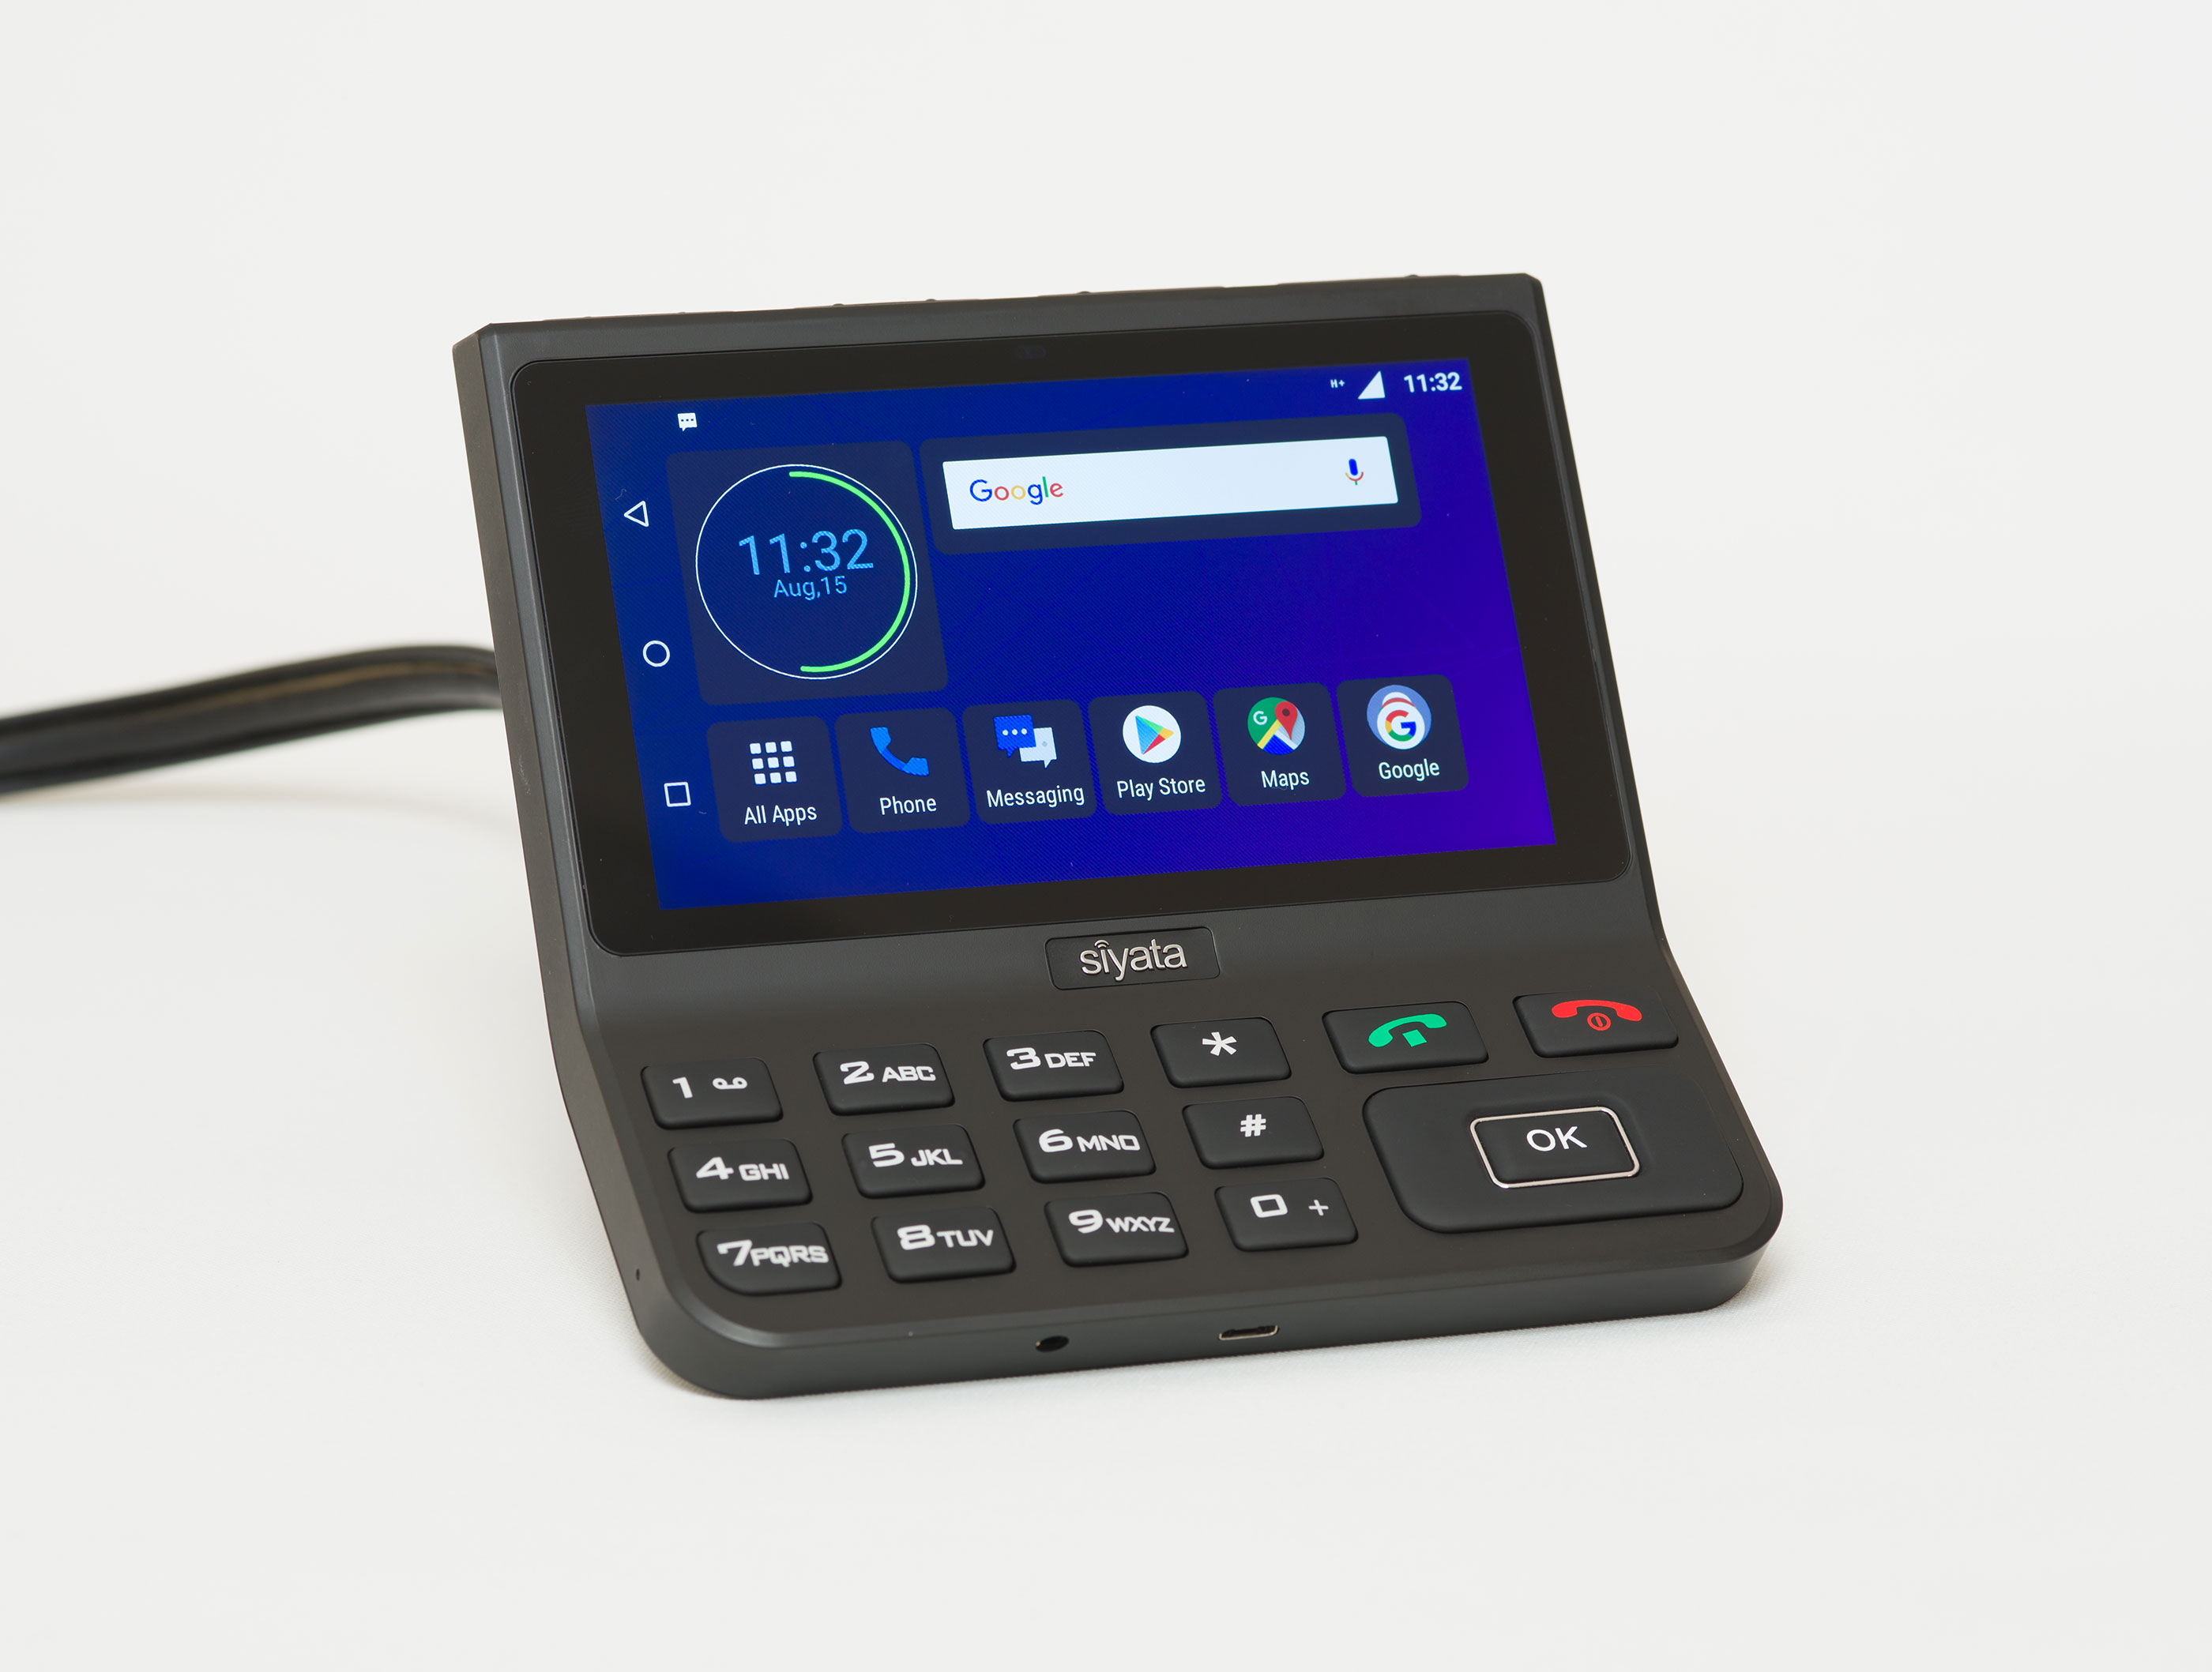 Siyata UV350 In-Vehicle Smartphone